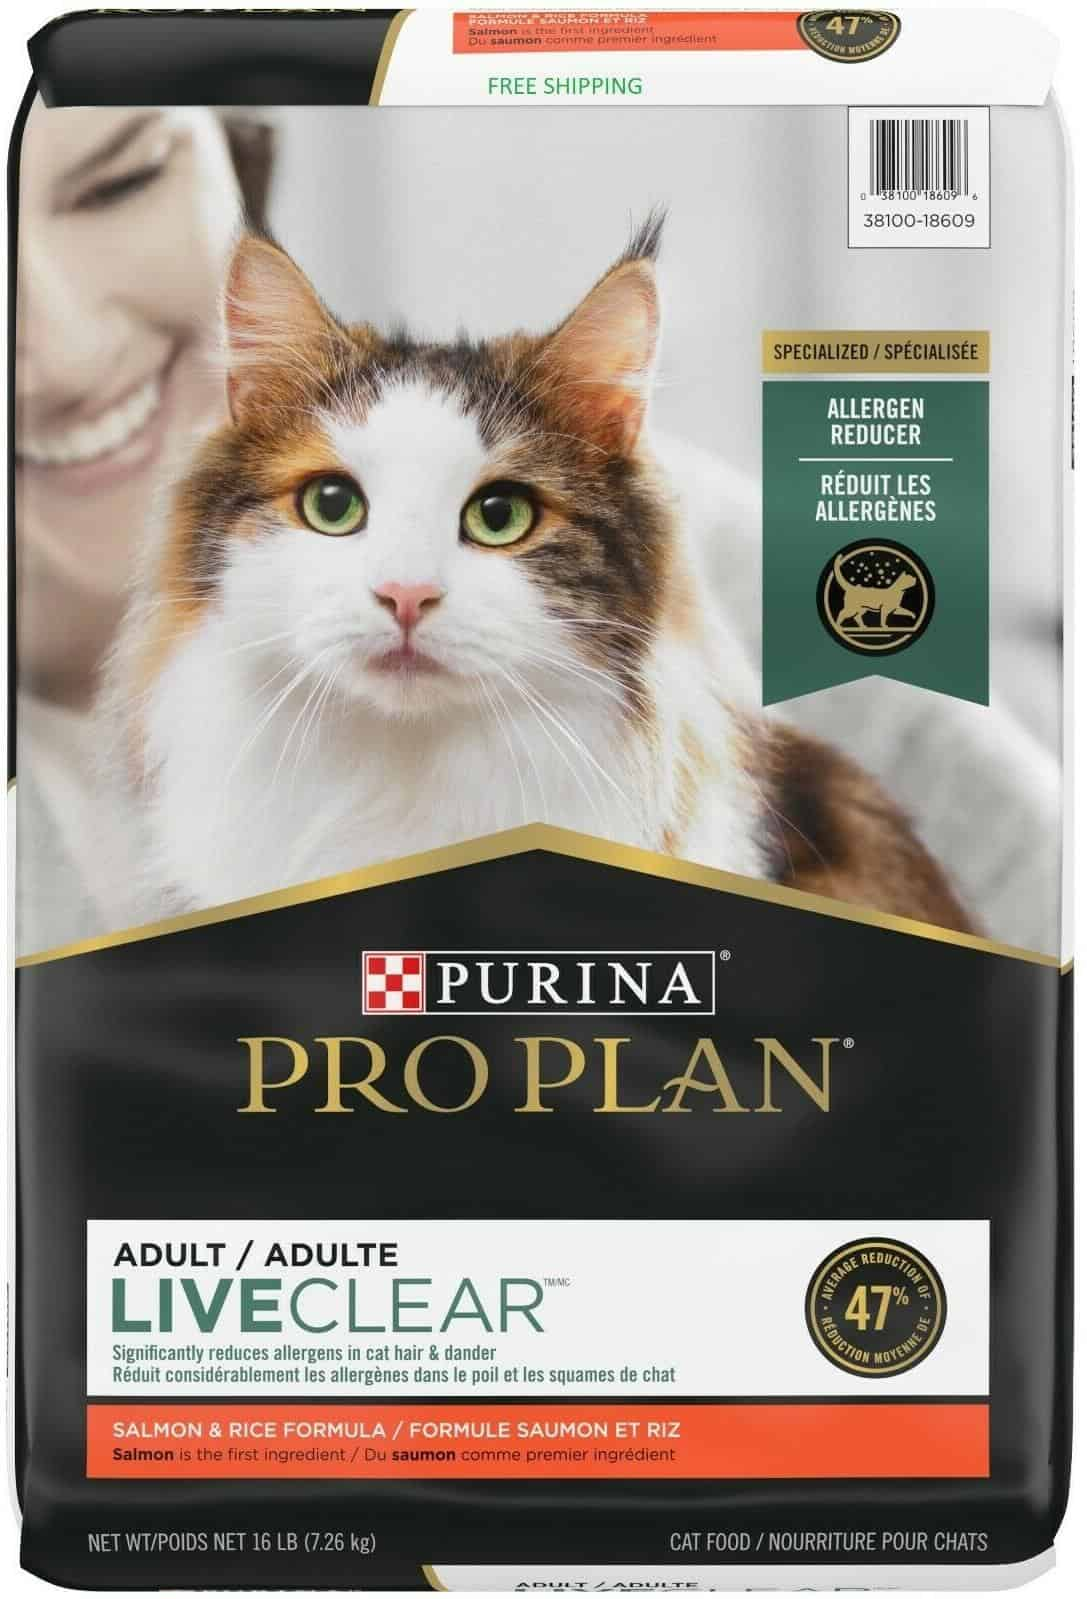 Purina-Pro-Plan-Allergen-Reducing-Adult-Dry-Cat-Food